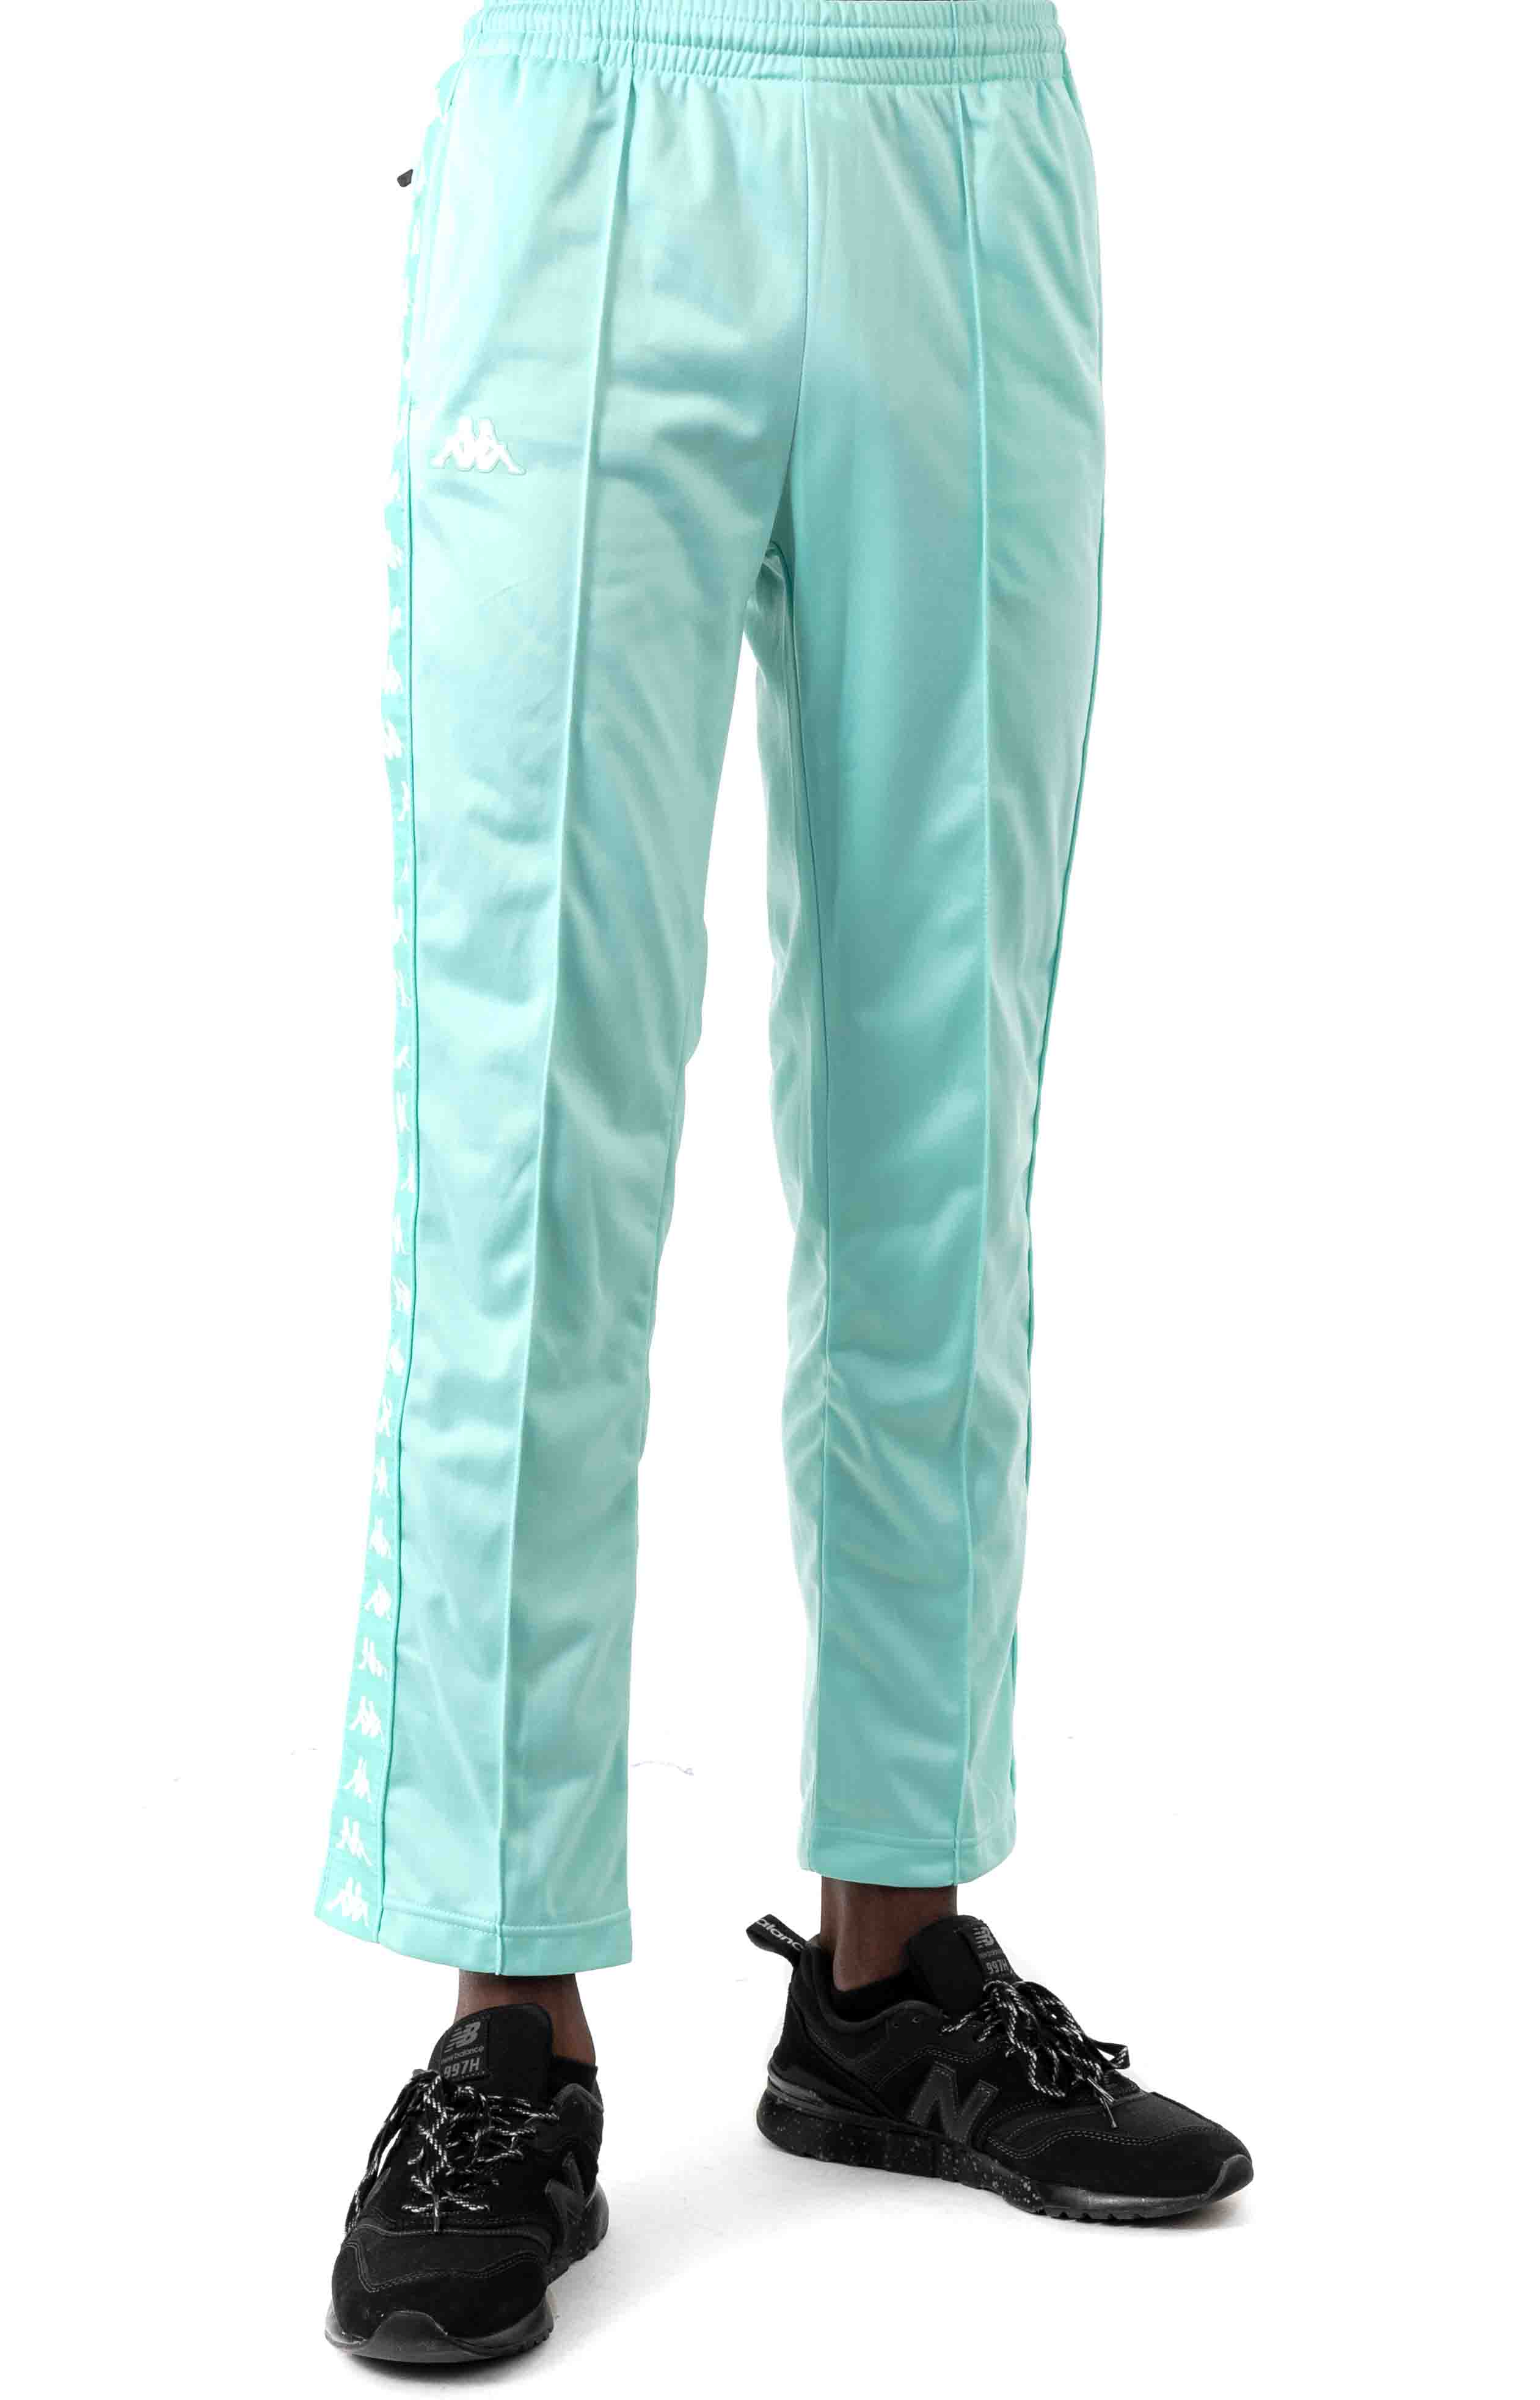 222 Banda Astoriazz Trackpant - Green Aqua  2